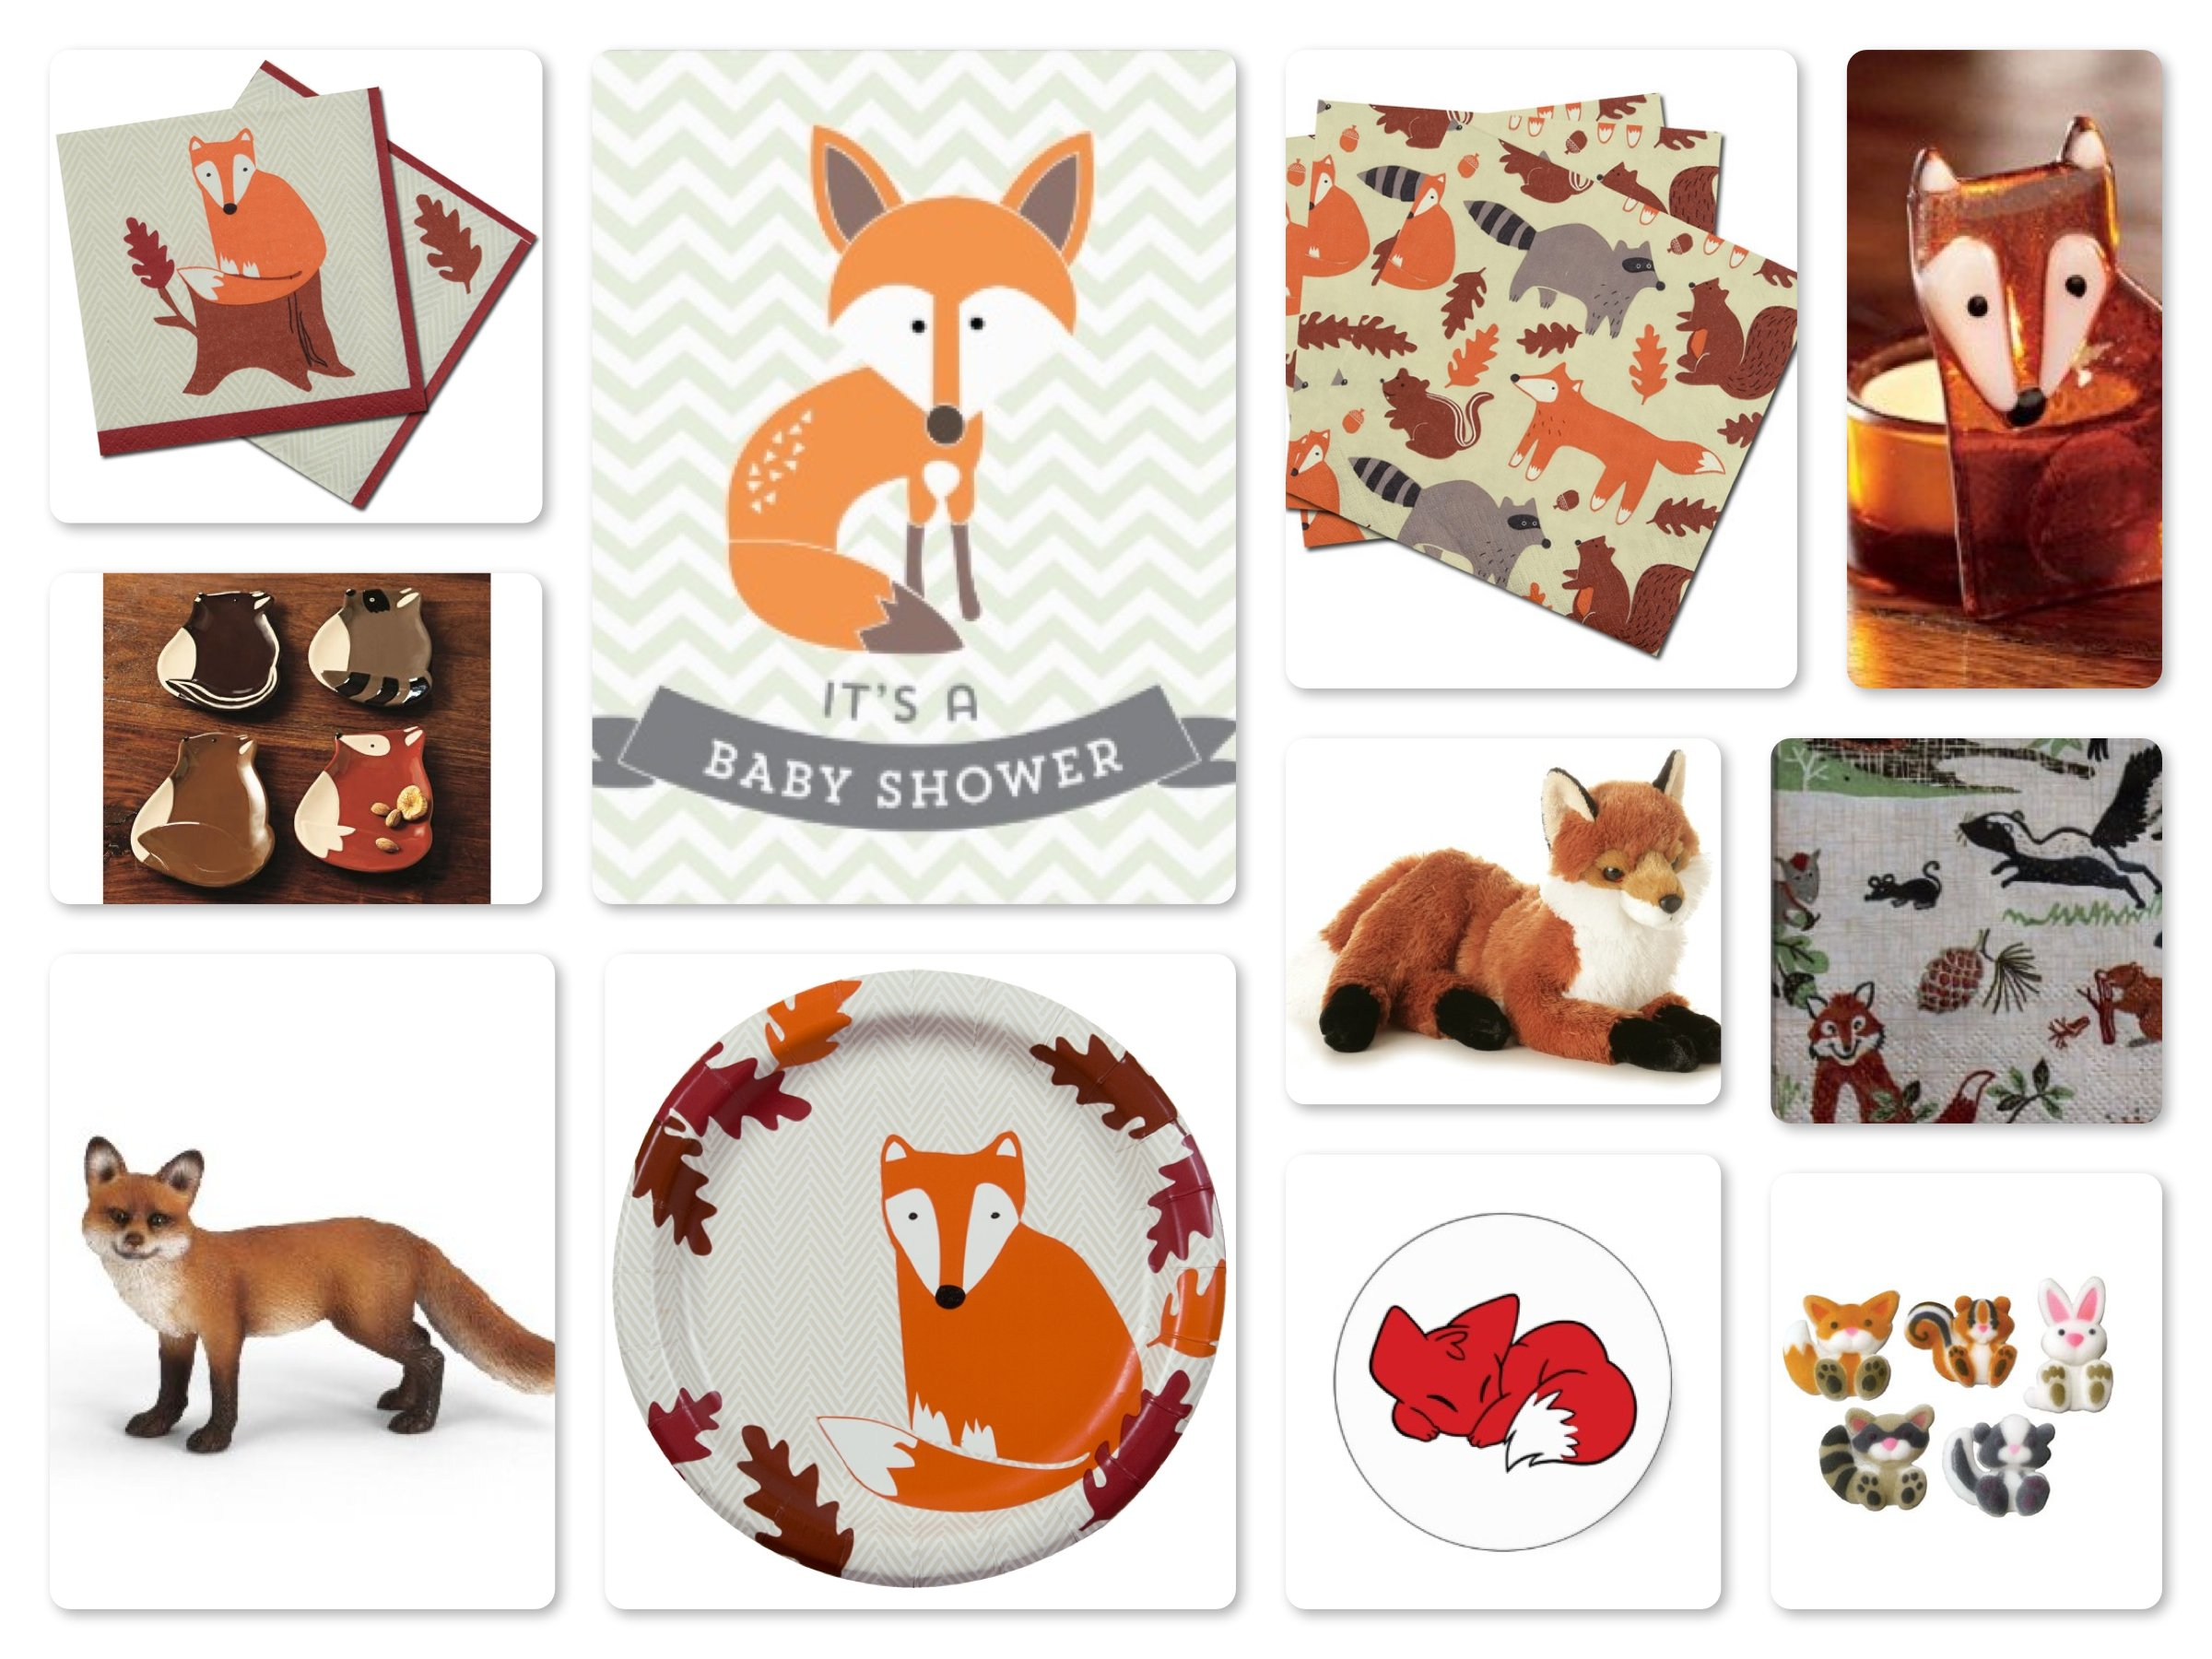 Fox Theme Party Planning Ideas Decor & Supplies